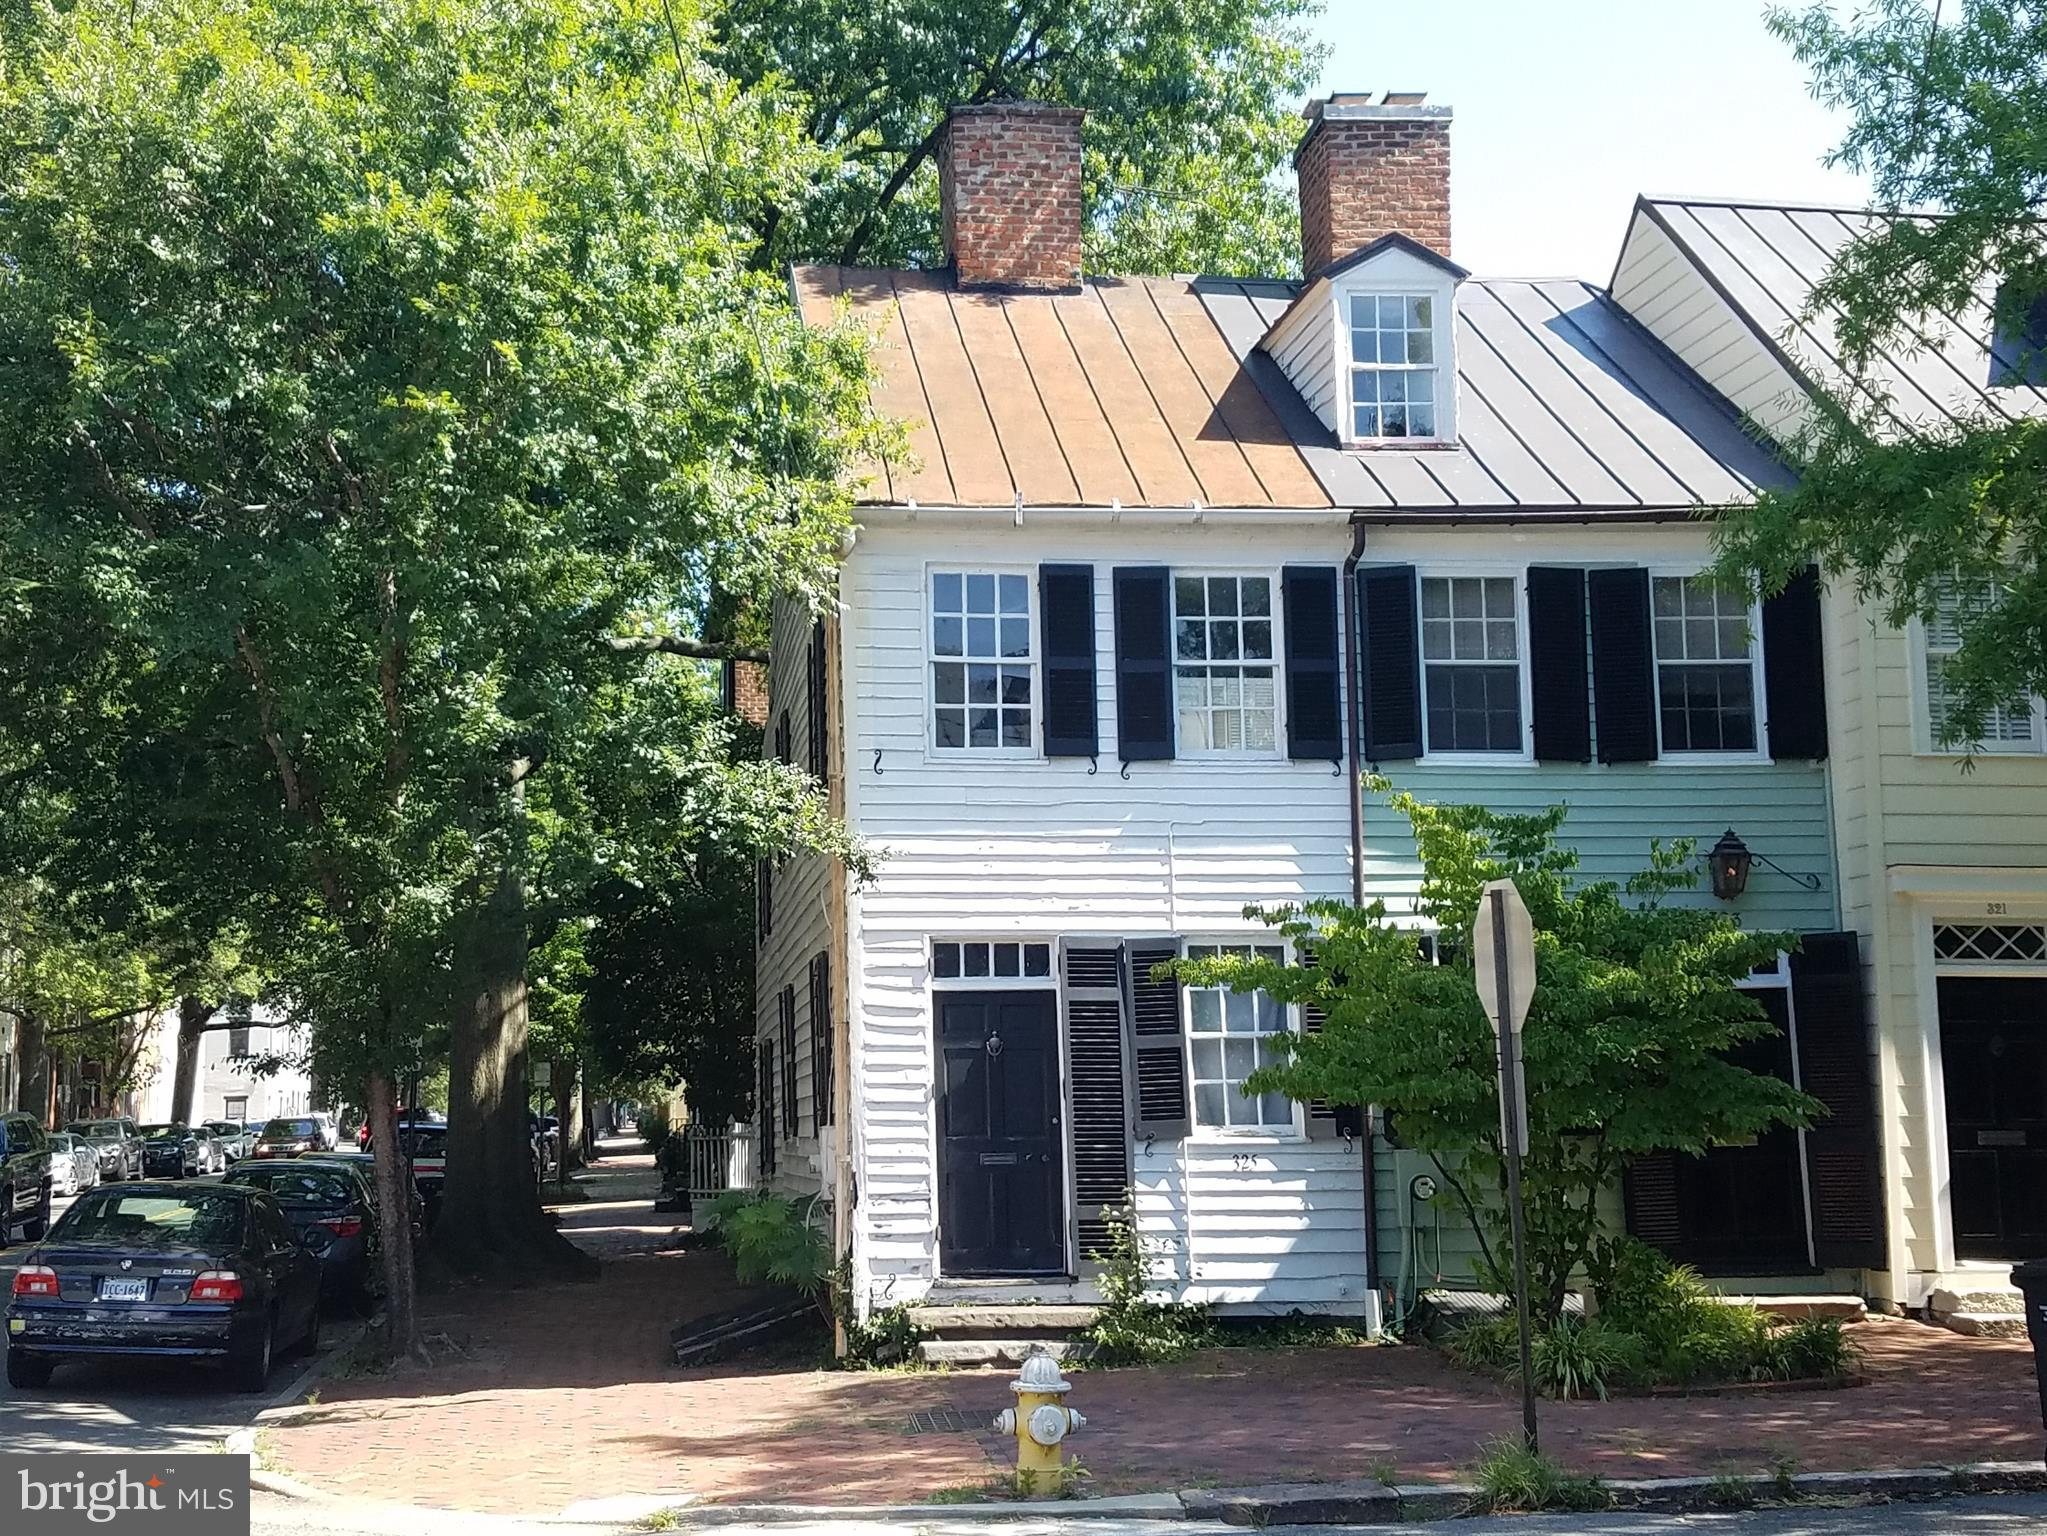 """Rarely available end-unit townhome in Historic Old Town Alexandria!  Originally built in 1800 and sited at the corner of Duke Street and S. Royal Street, walking distance from your favorite retail and dining establishments on King Street in Old Town!  Just three blocks to Alexandria City Hall, and six blocks to reach Waterfront Park, Torpedo Factory, and Chart House Restaurant overlooking the docks and water taxi.  Founders Park offers jogging and bike trails, concerts, events, and spectacular views of sailboats gliding by, airplanes flying overhead, National Harbor across the river, and fireworks on the 4th of July!  Tax records state the property was remodeled in 1972 and is 1,210 square feet on two levels above ground with a fireplace, plus 372 square feet in a basement.  Property is assumed to be in below-average condition and is being sold """"As Is"""".   Best suited for a cash purchaser experienced with renovations, whether an investor or private owner.  The location is in high demand, and the high public visibility of this corner lot makes this a very exciting project for the new buyer."""